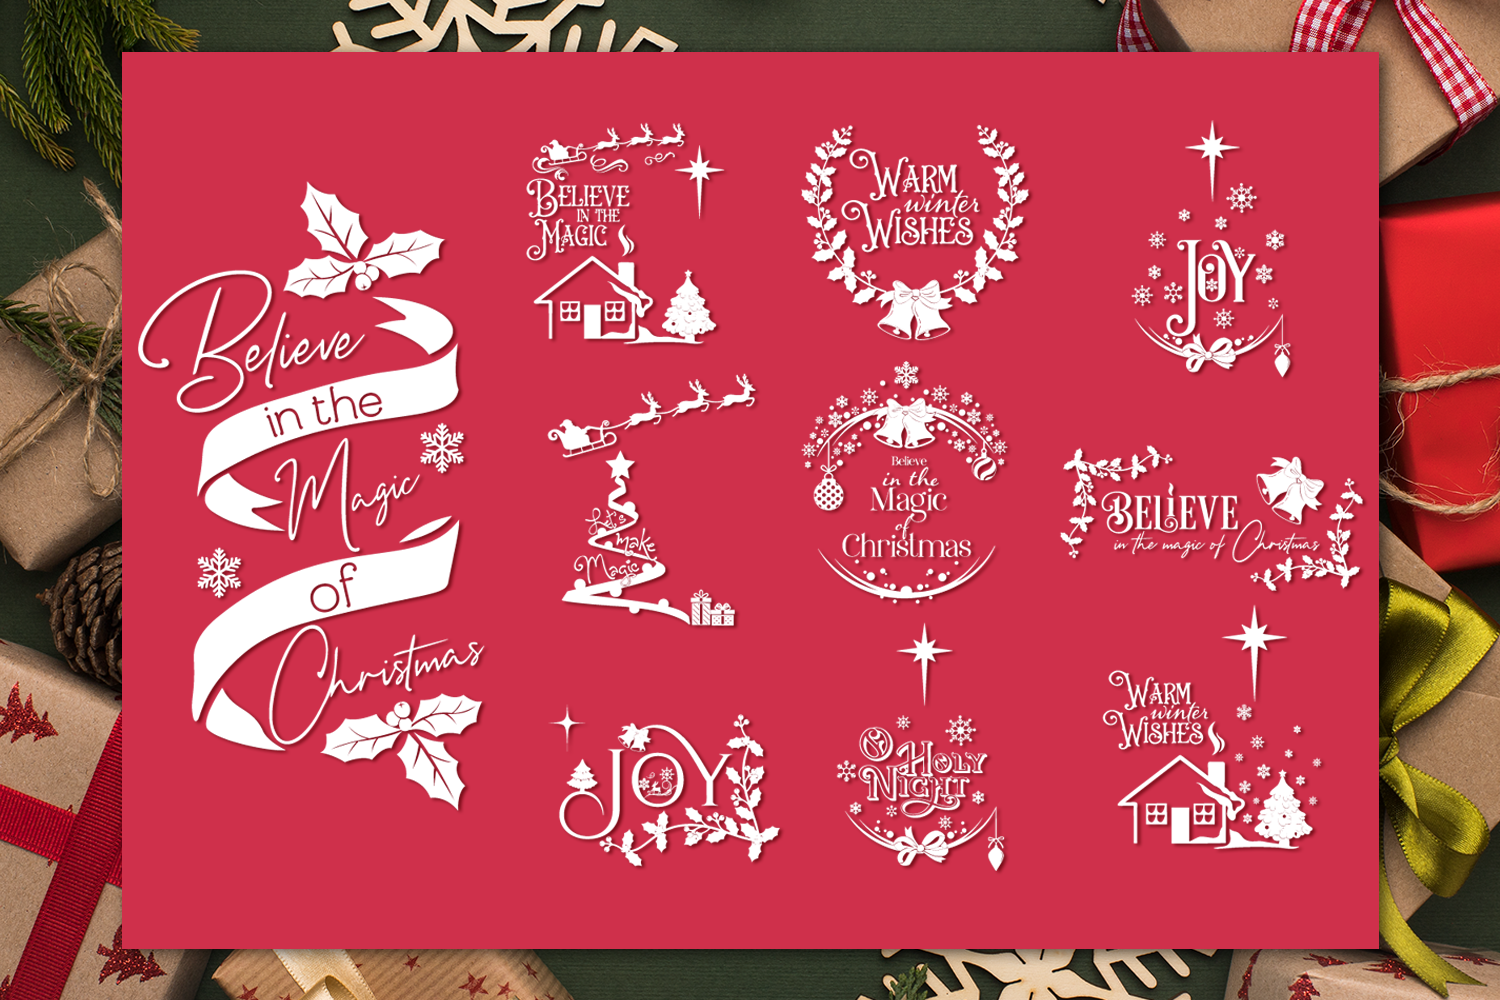 Download Free Christmas Quotes Bundle Graphic By Anastasia Feya Creative Fabrica for Cricut Explore, Silhouette and other cutting machines.